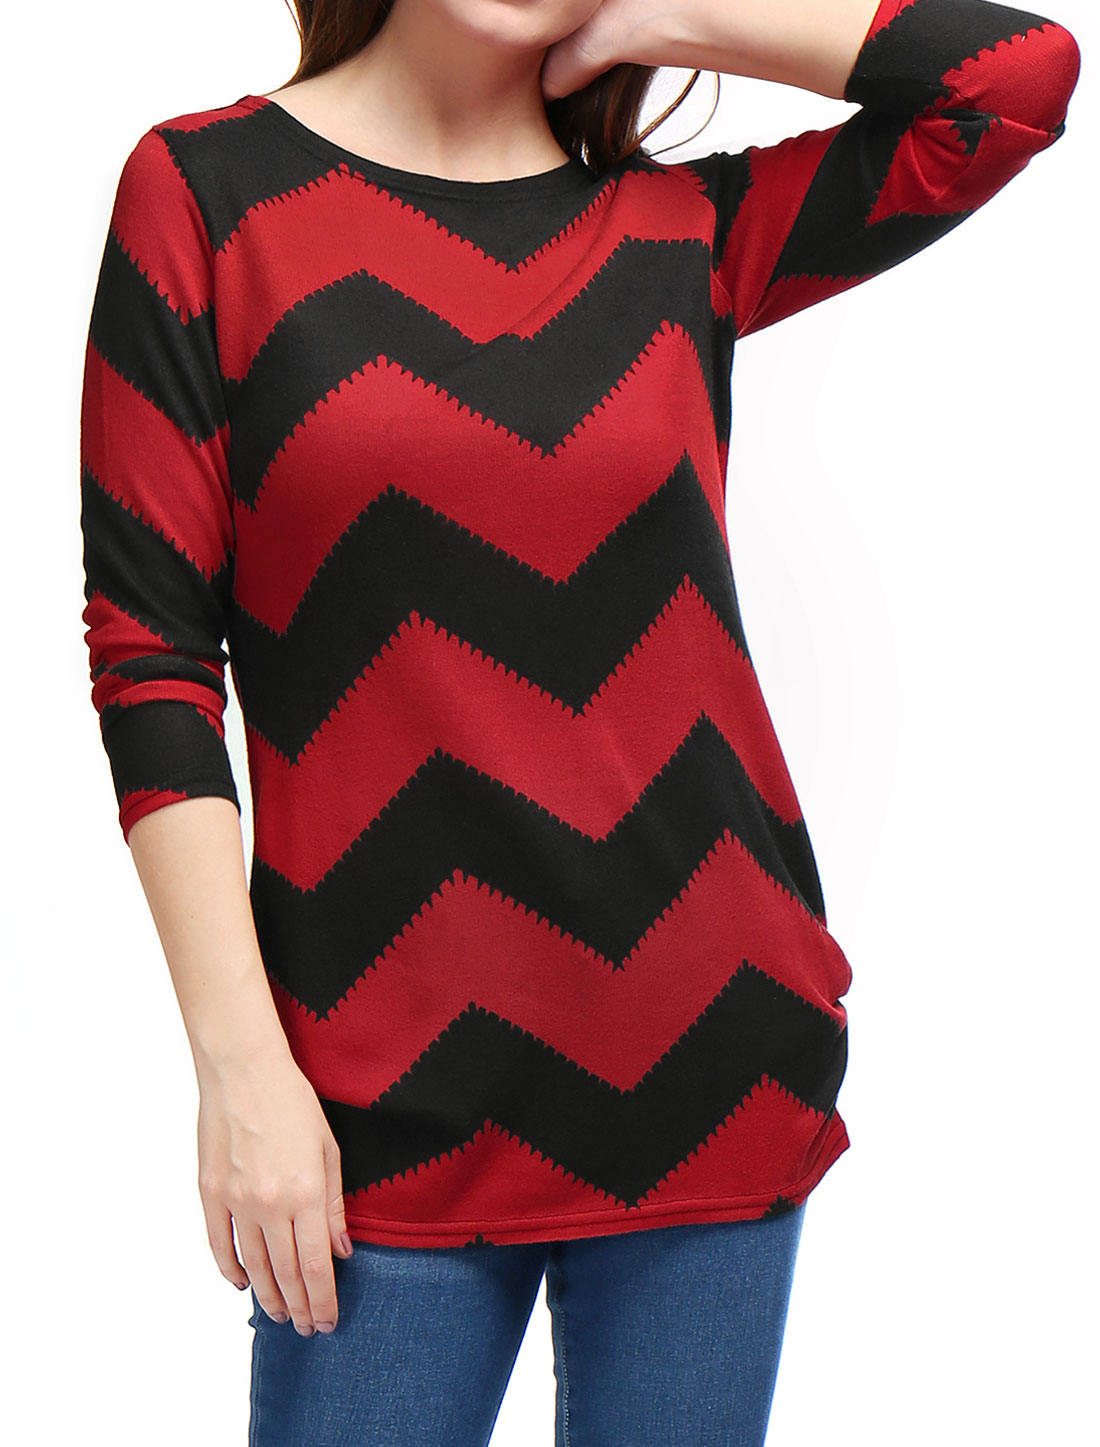 Woman Zig-Zag Pattern Knitted Loose Tunic Shirt Black Red S